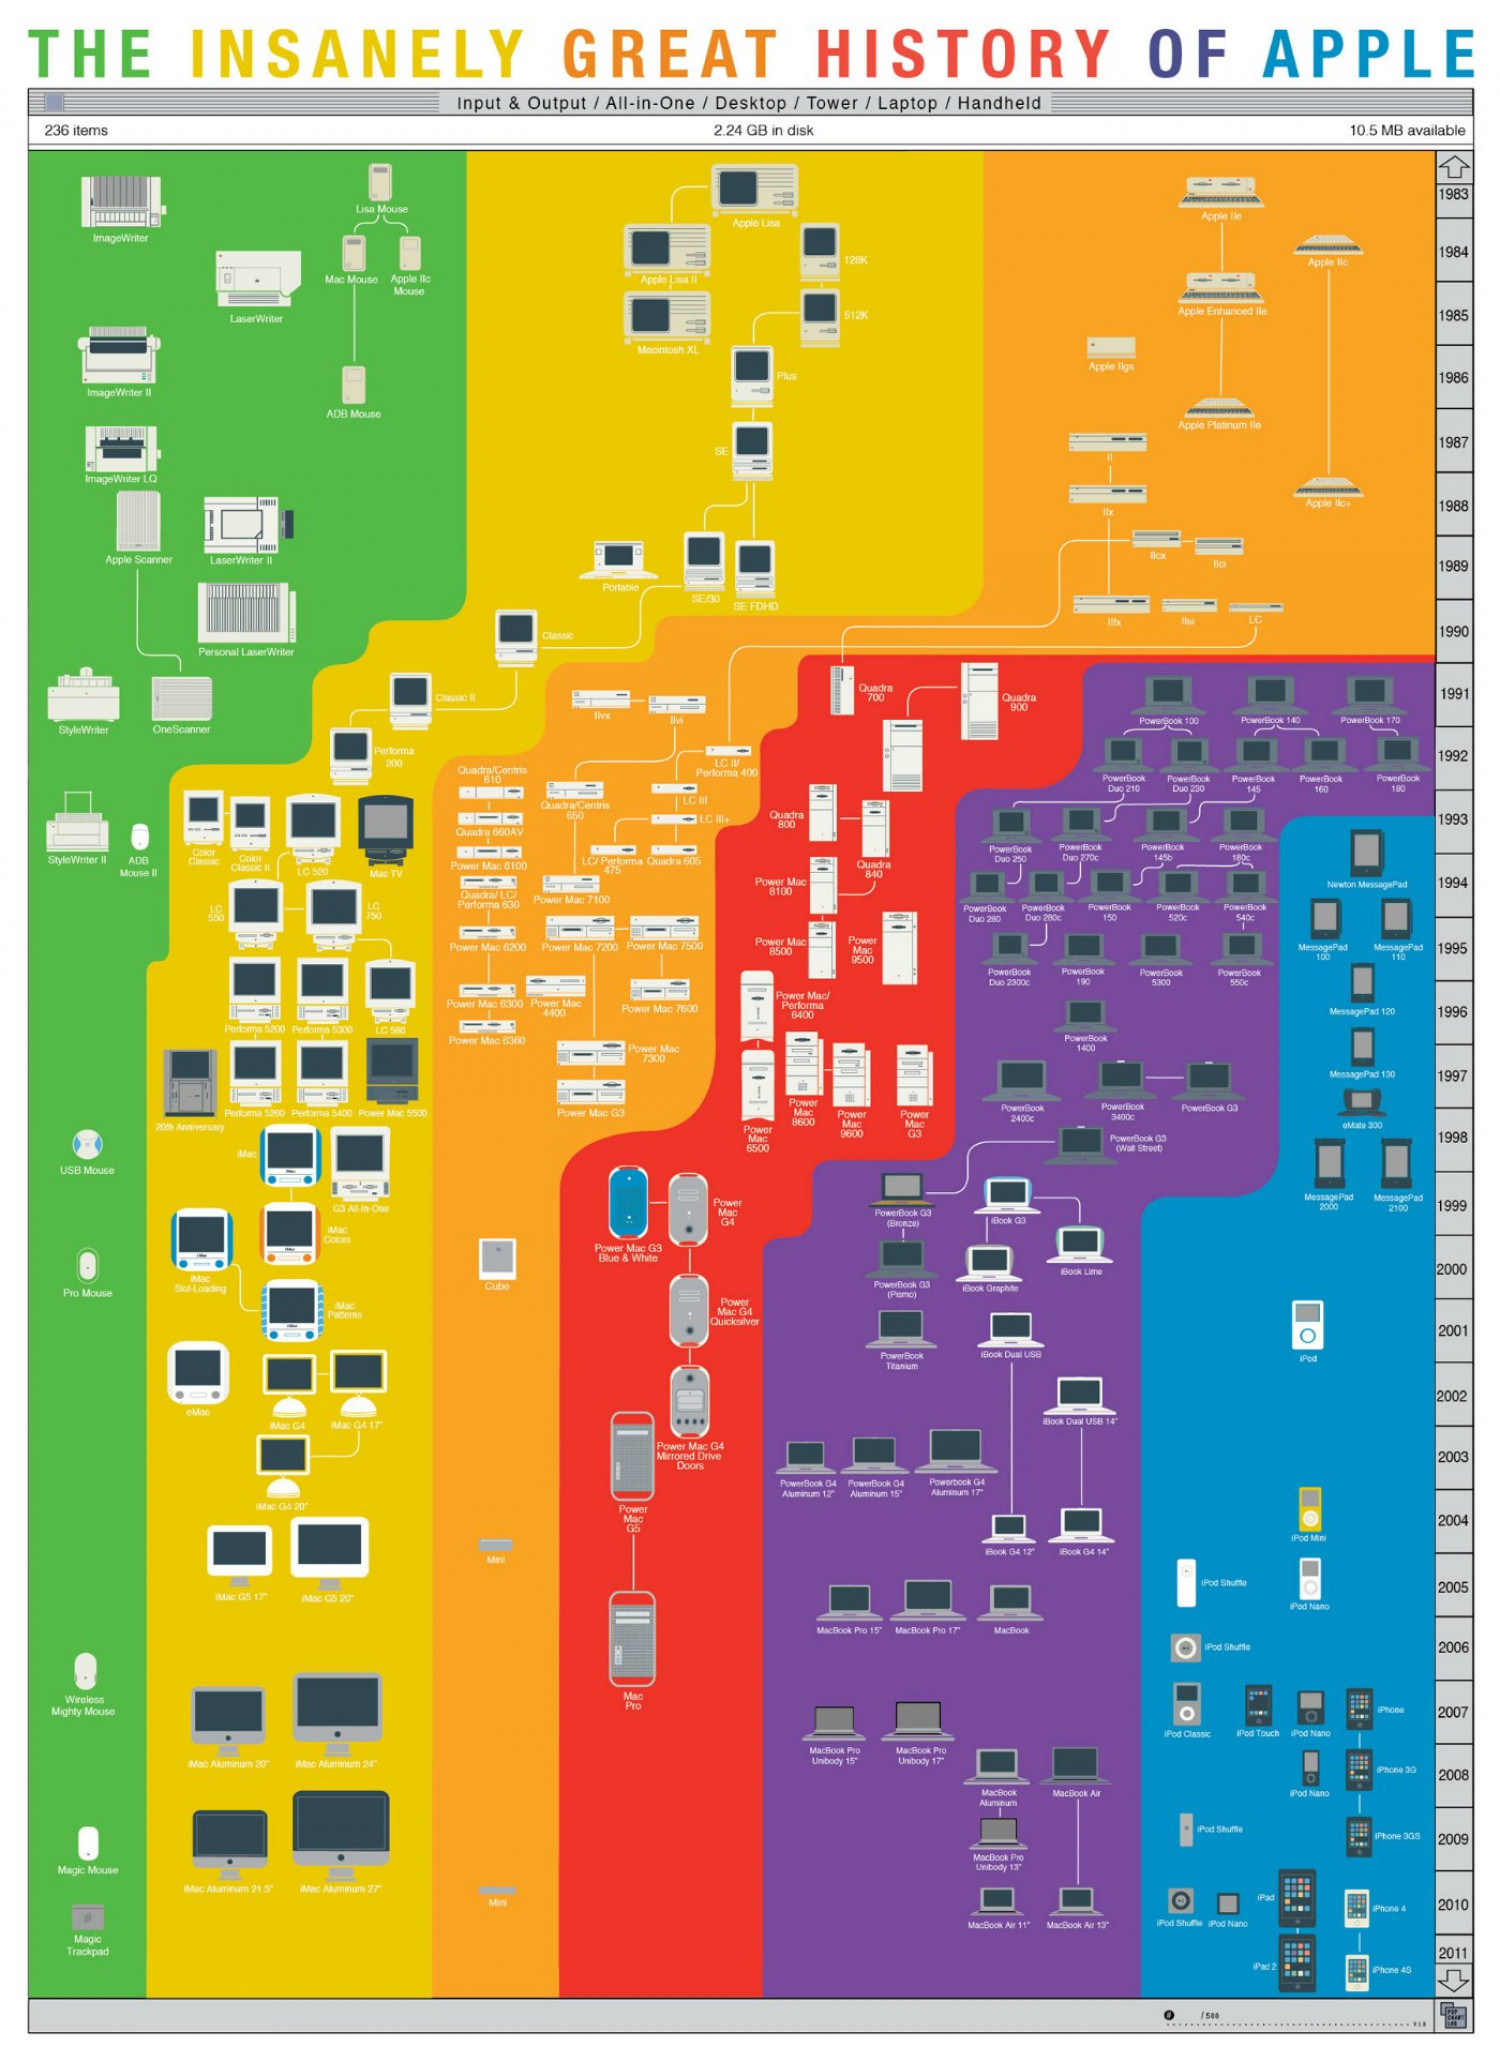 The Insanely Great History of Apple Infographic